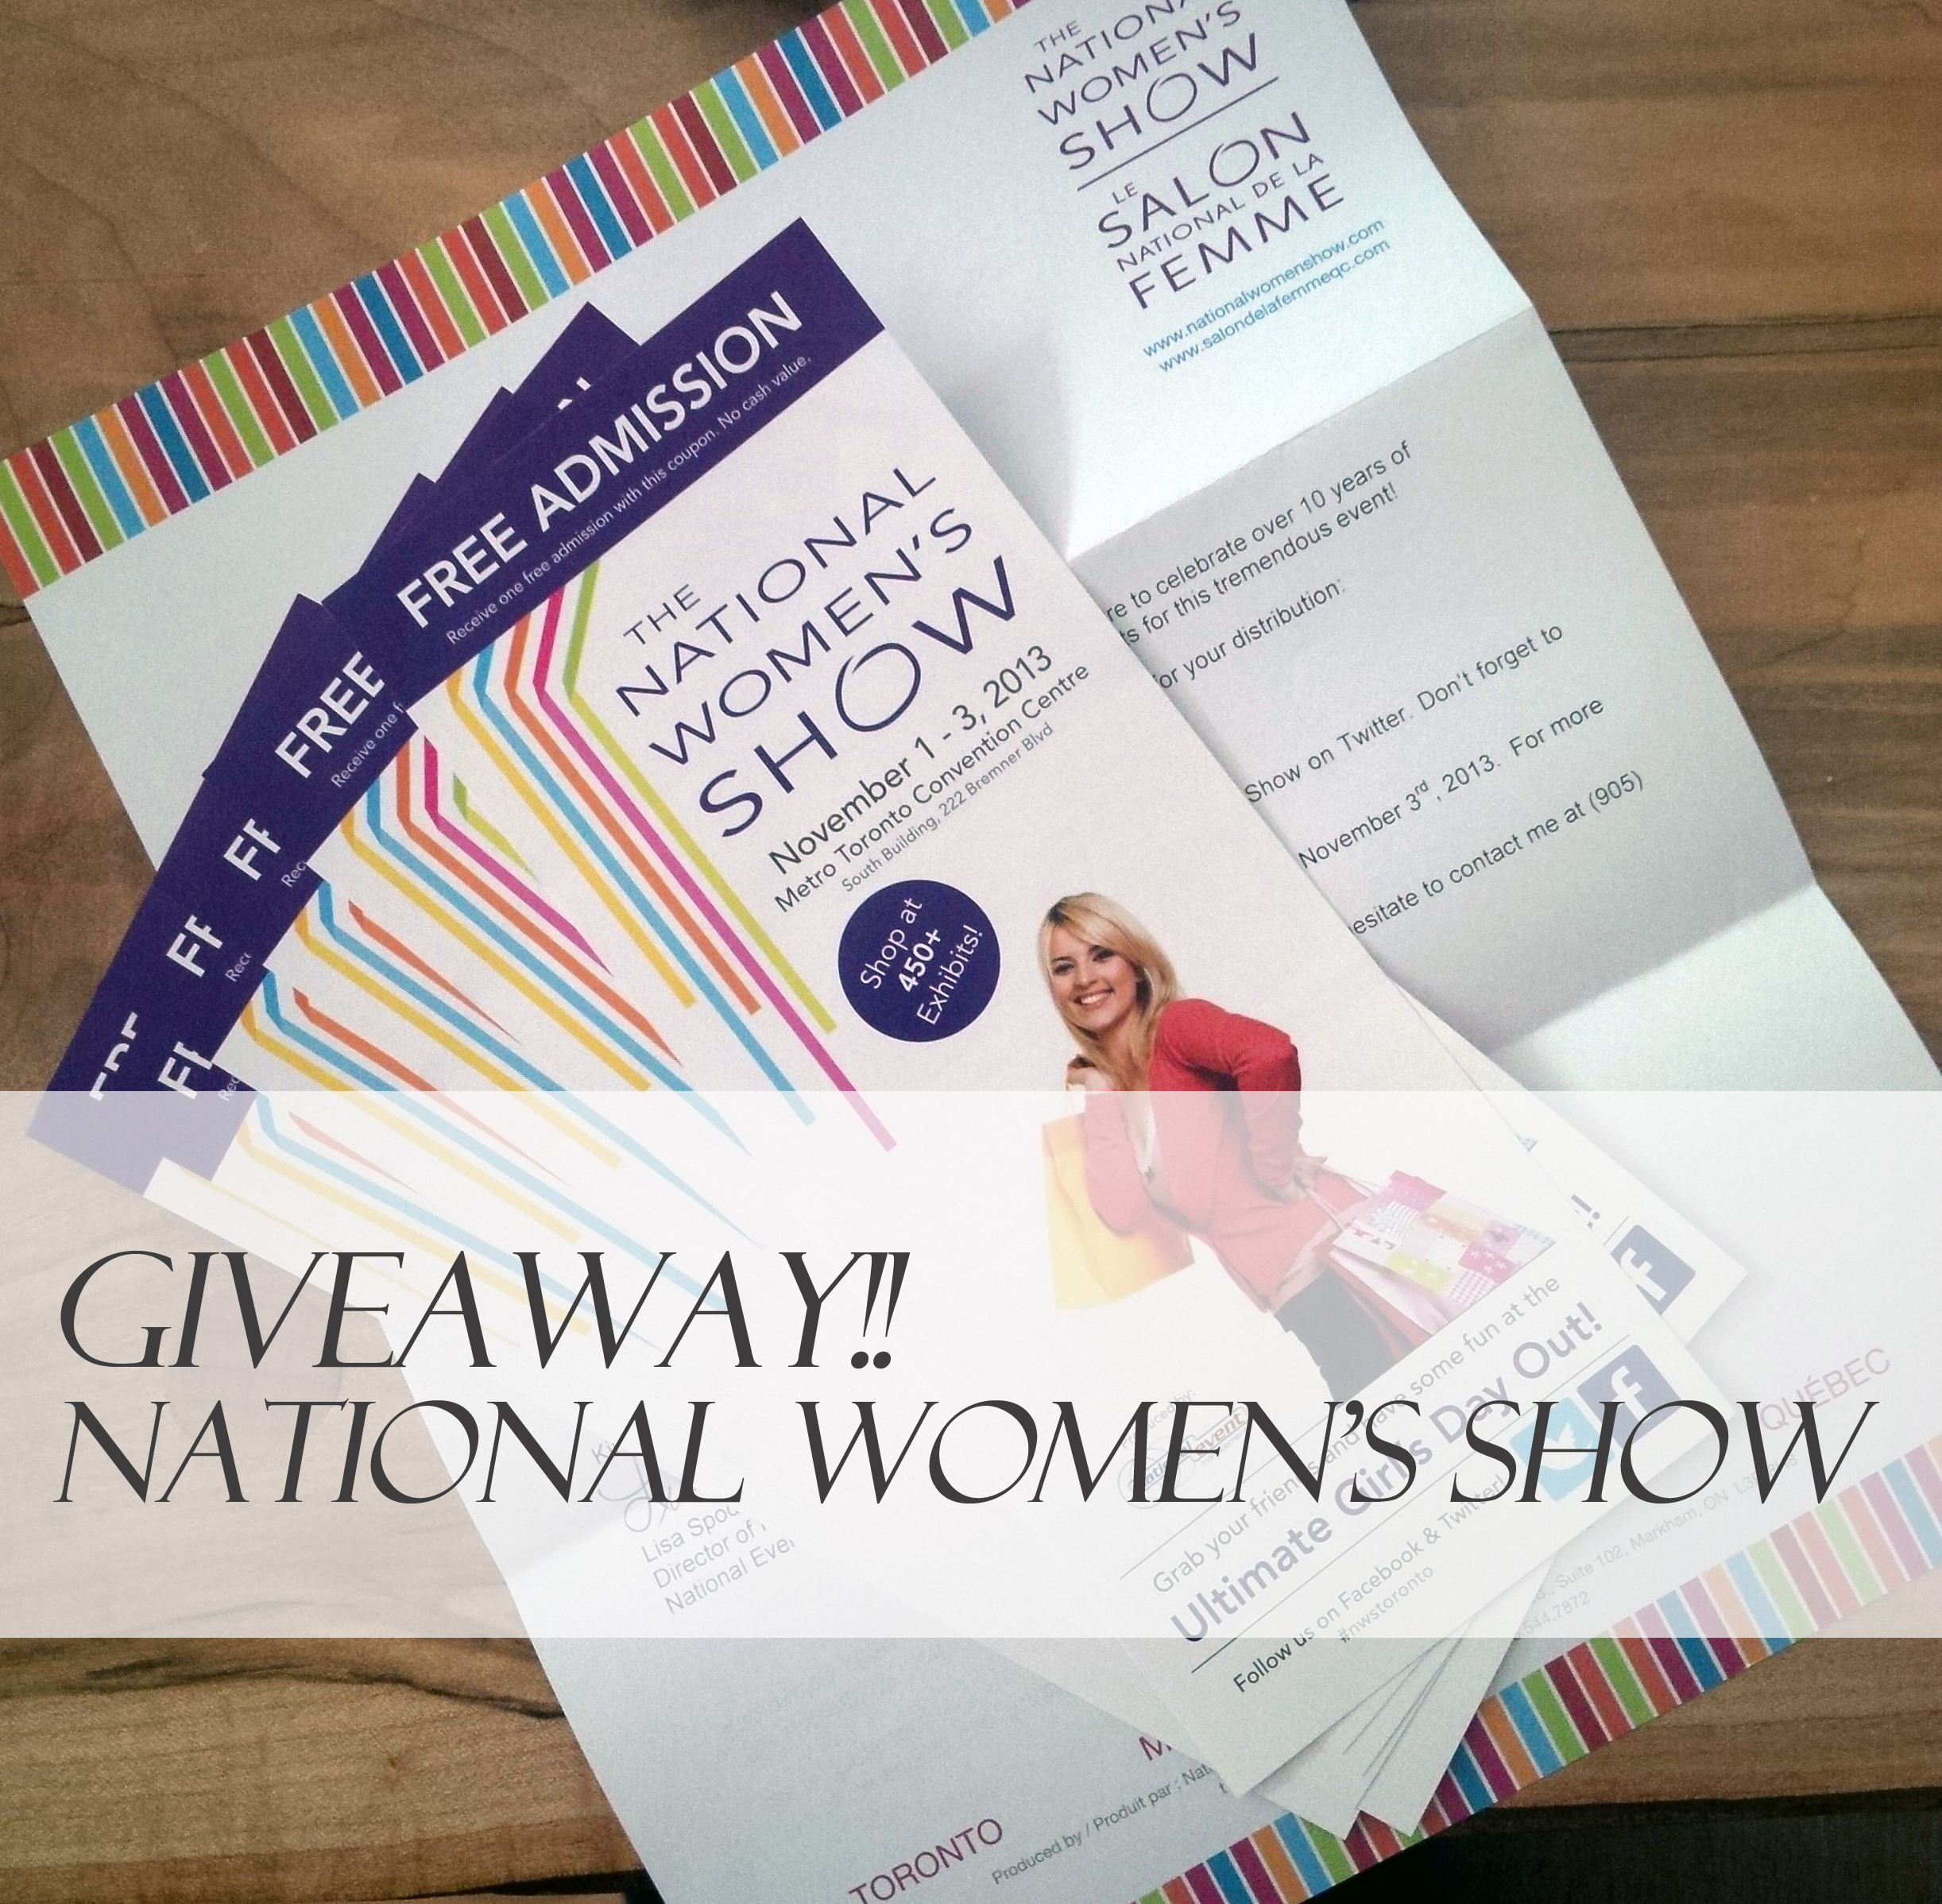 The National Women's Show Free Tickets, The National Women's Show Givewaway